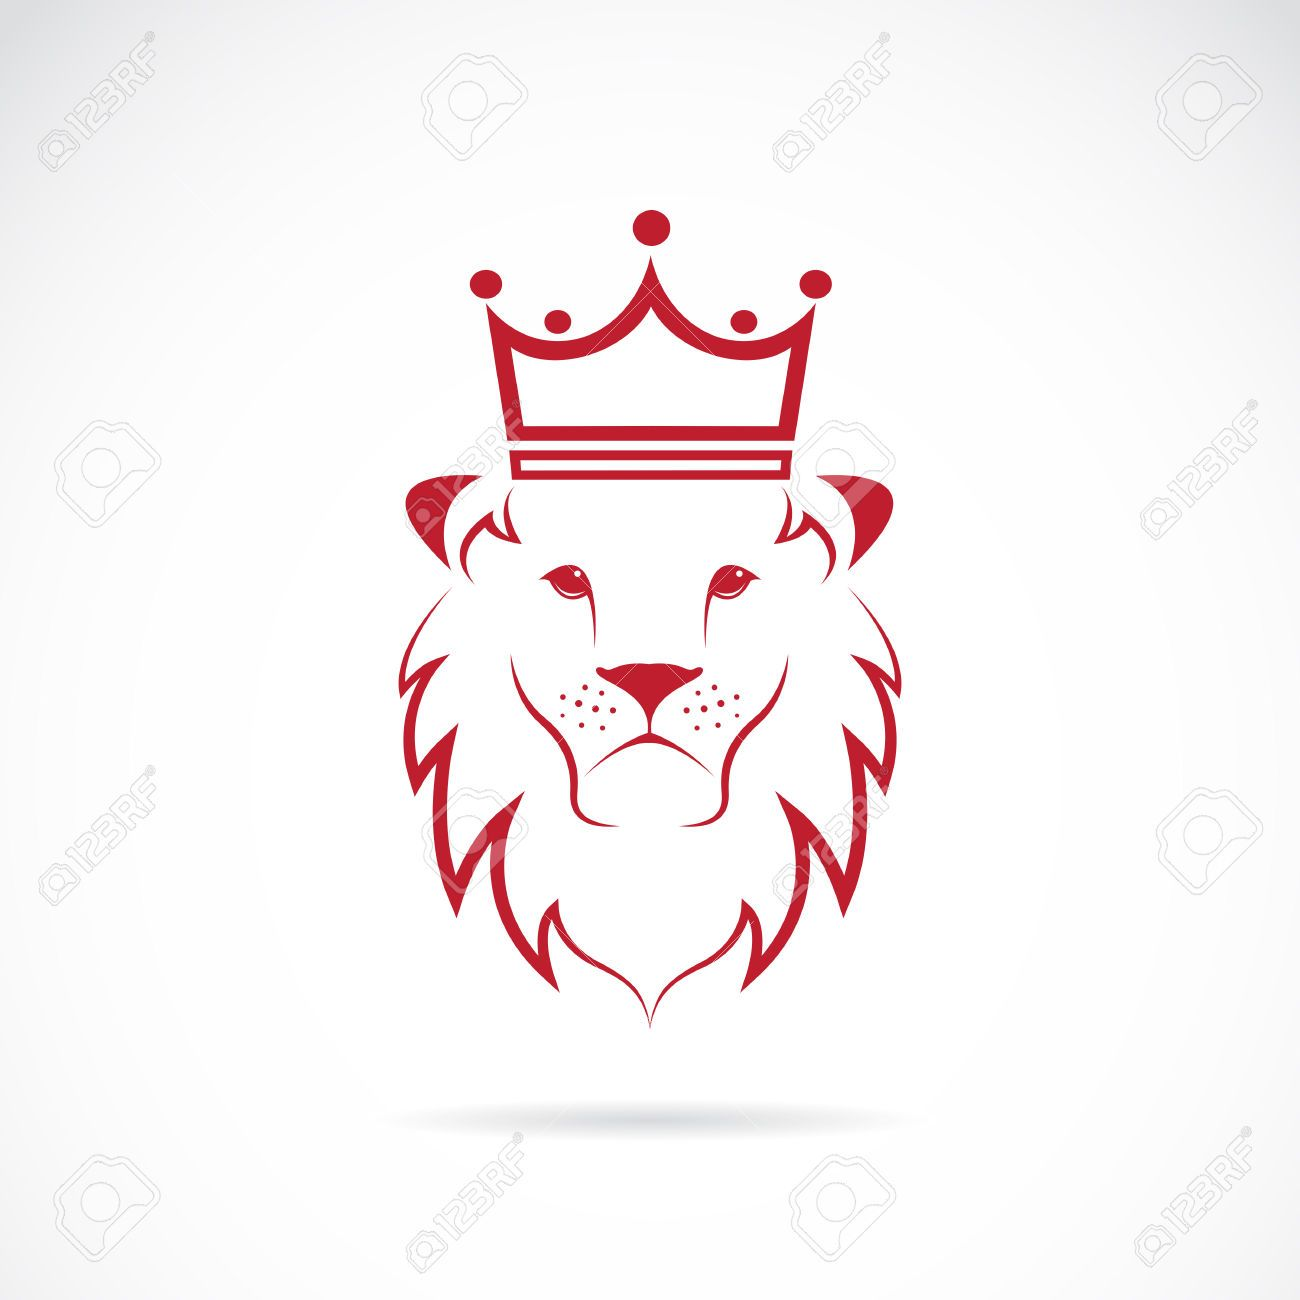 http://www.123rf.com/photo_29032311_stock-vector-lion